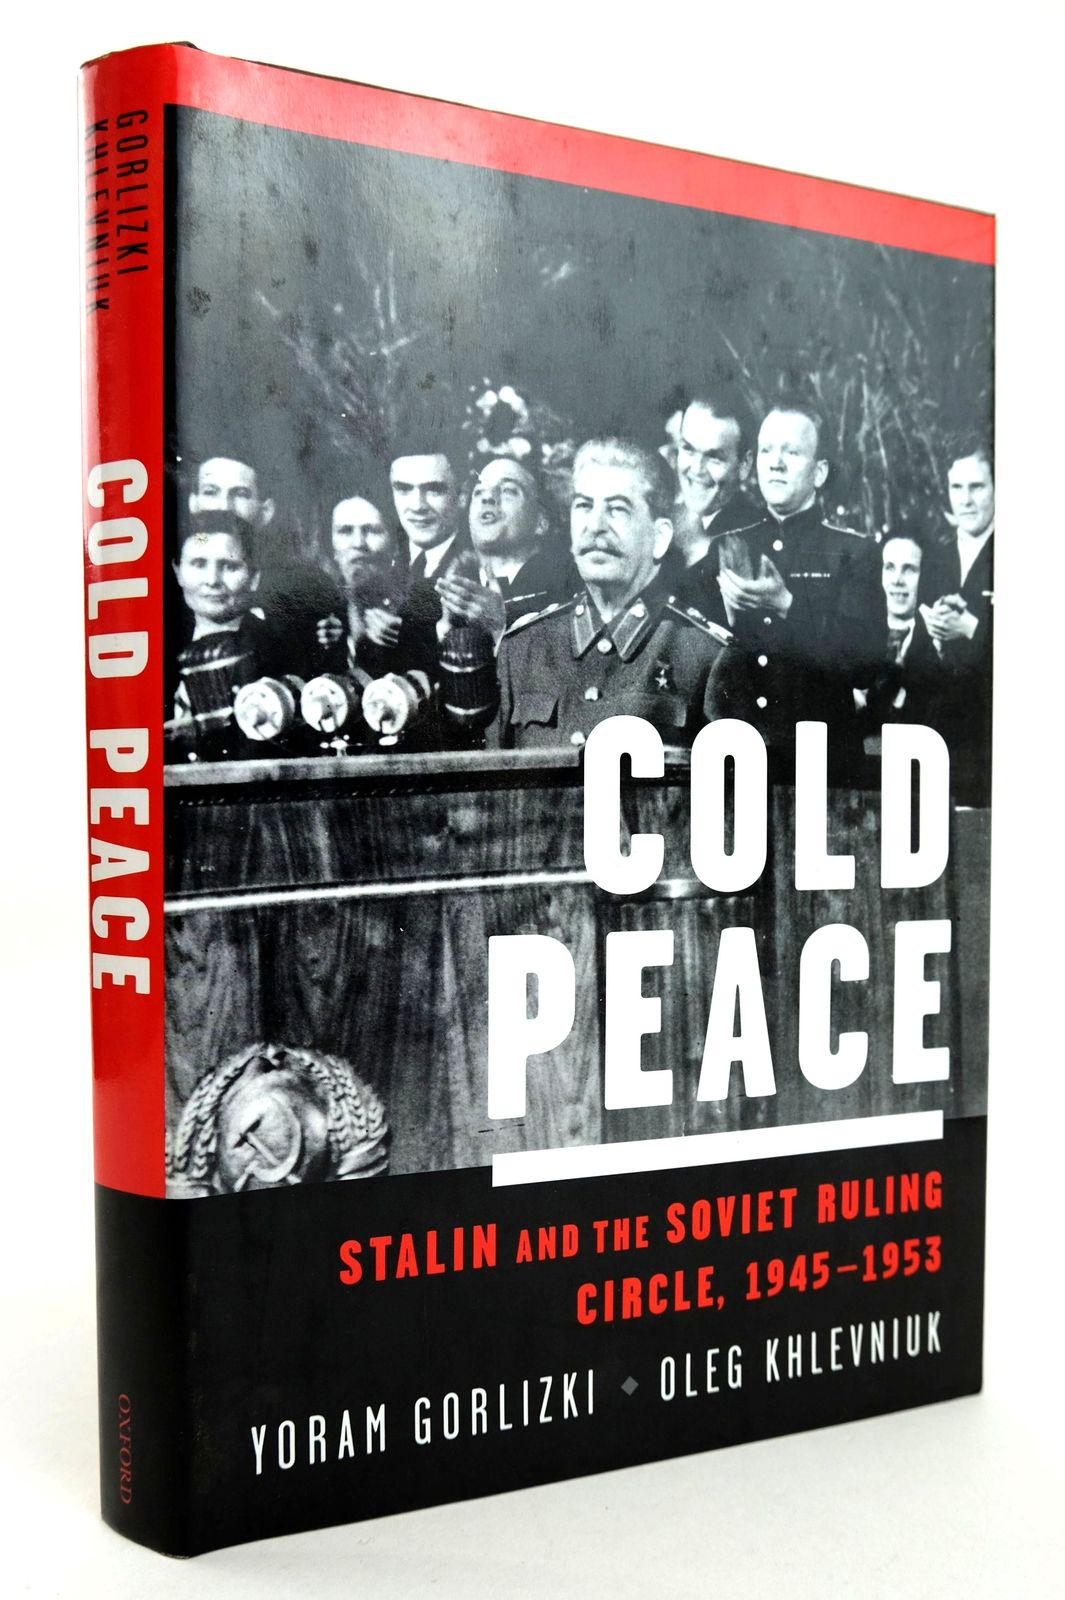 Photo of COLD PEACE: STALIN AND THE SOVIET RULING CIRCLE, 1945-1953 written by Gorlizki, Yoram Khlevniuk, Oleg published by Oxford University Press (STOCK CODE: 1818861)  for sale by Stella & Rose's Books